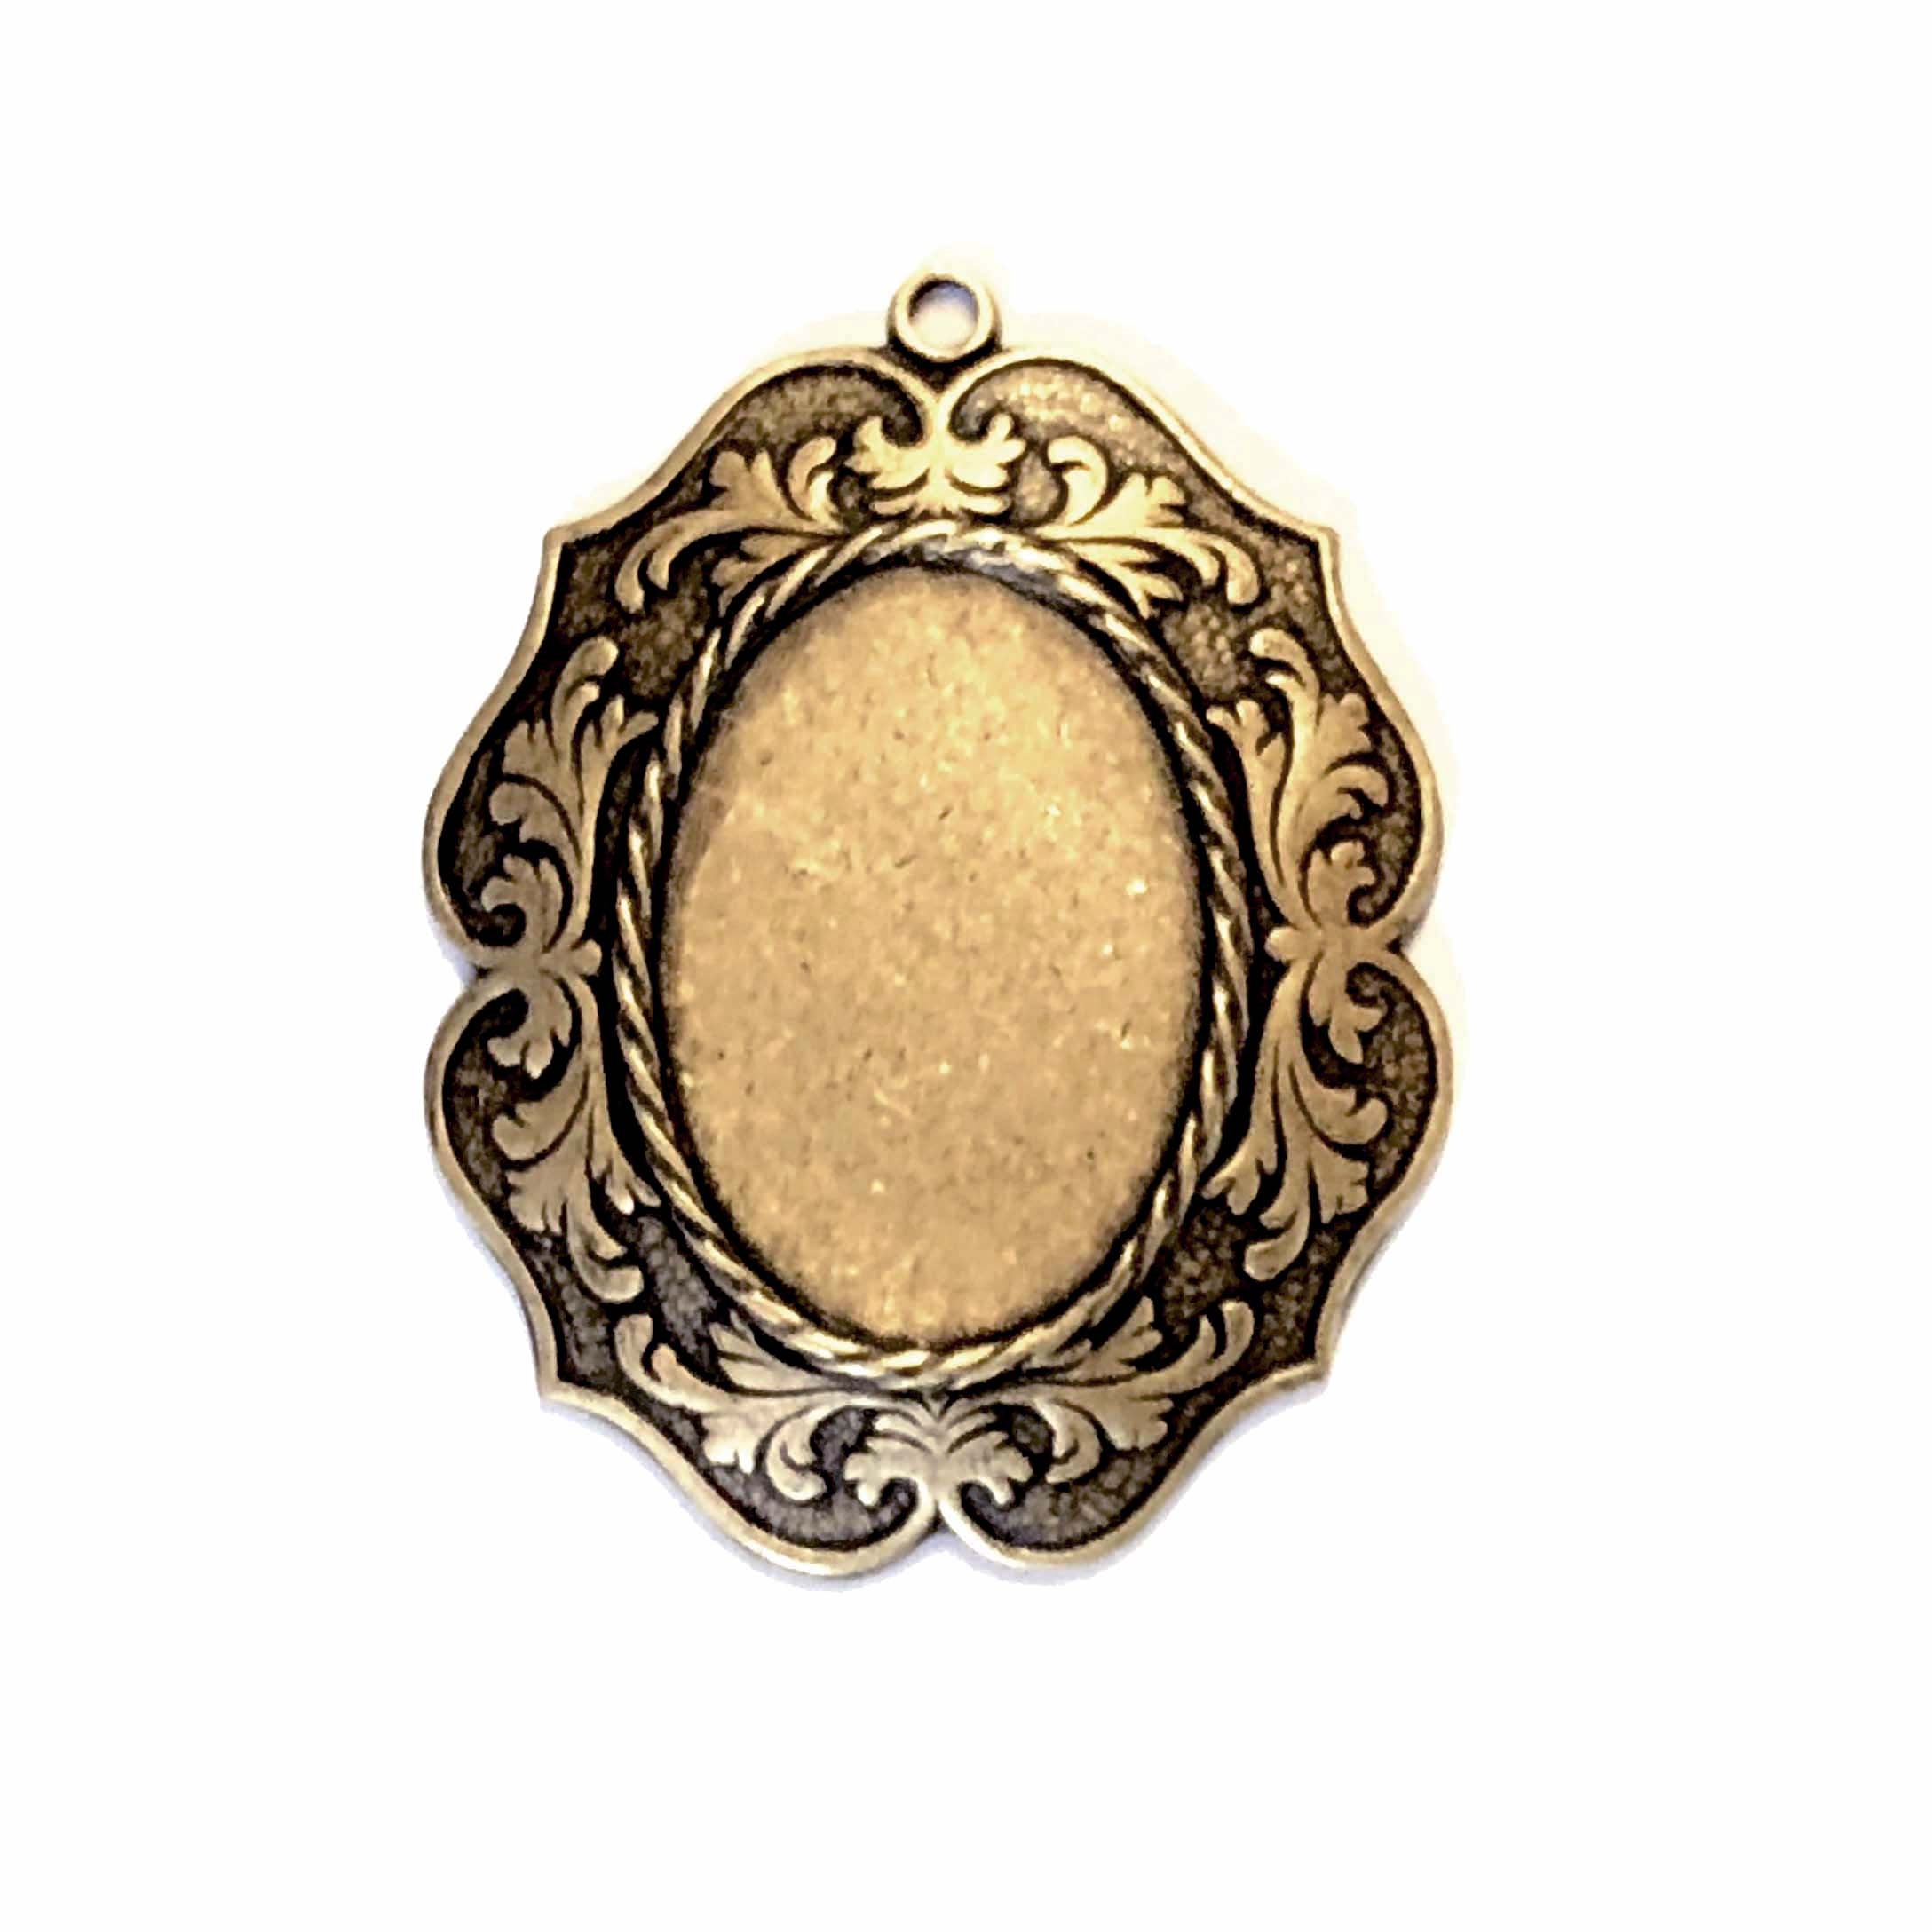 victorian style pendant mount, brass ox, antique brass, bezel, mount, pendant, US made, nickel free, 25x18mm mount, pendant mount, victorian style, rope border, brass, jewelry making, jewelry supplies, vintage supplies, B'sue Boutiques, 05327